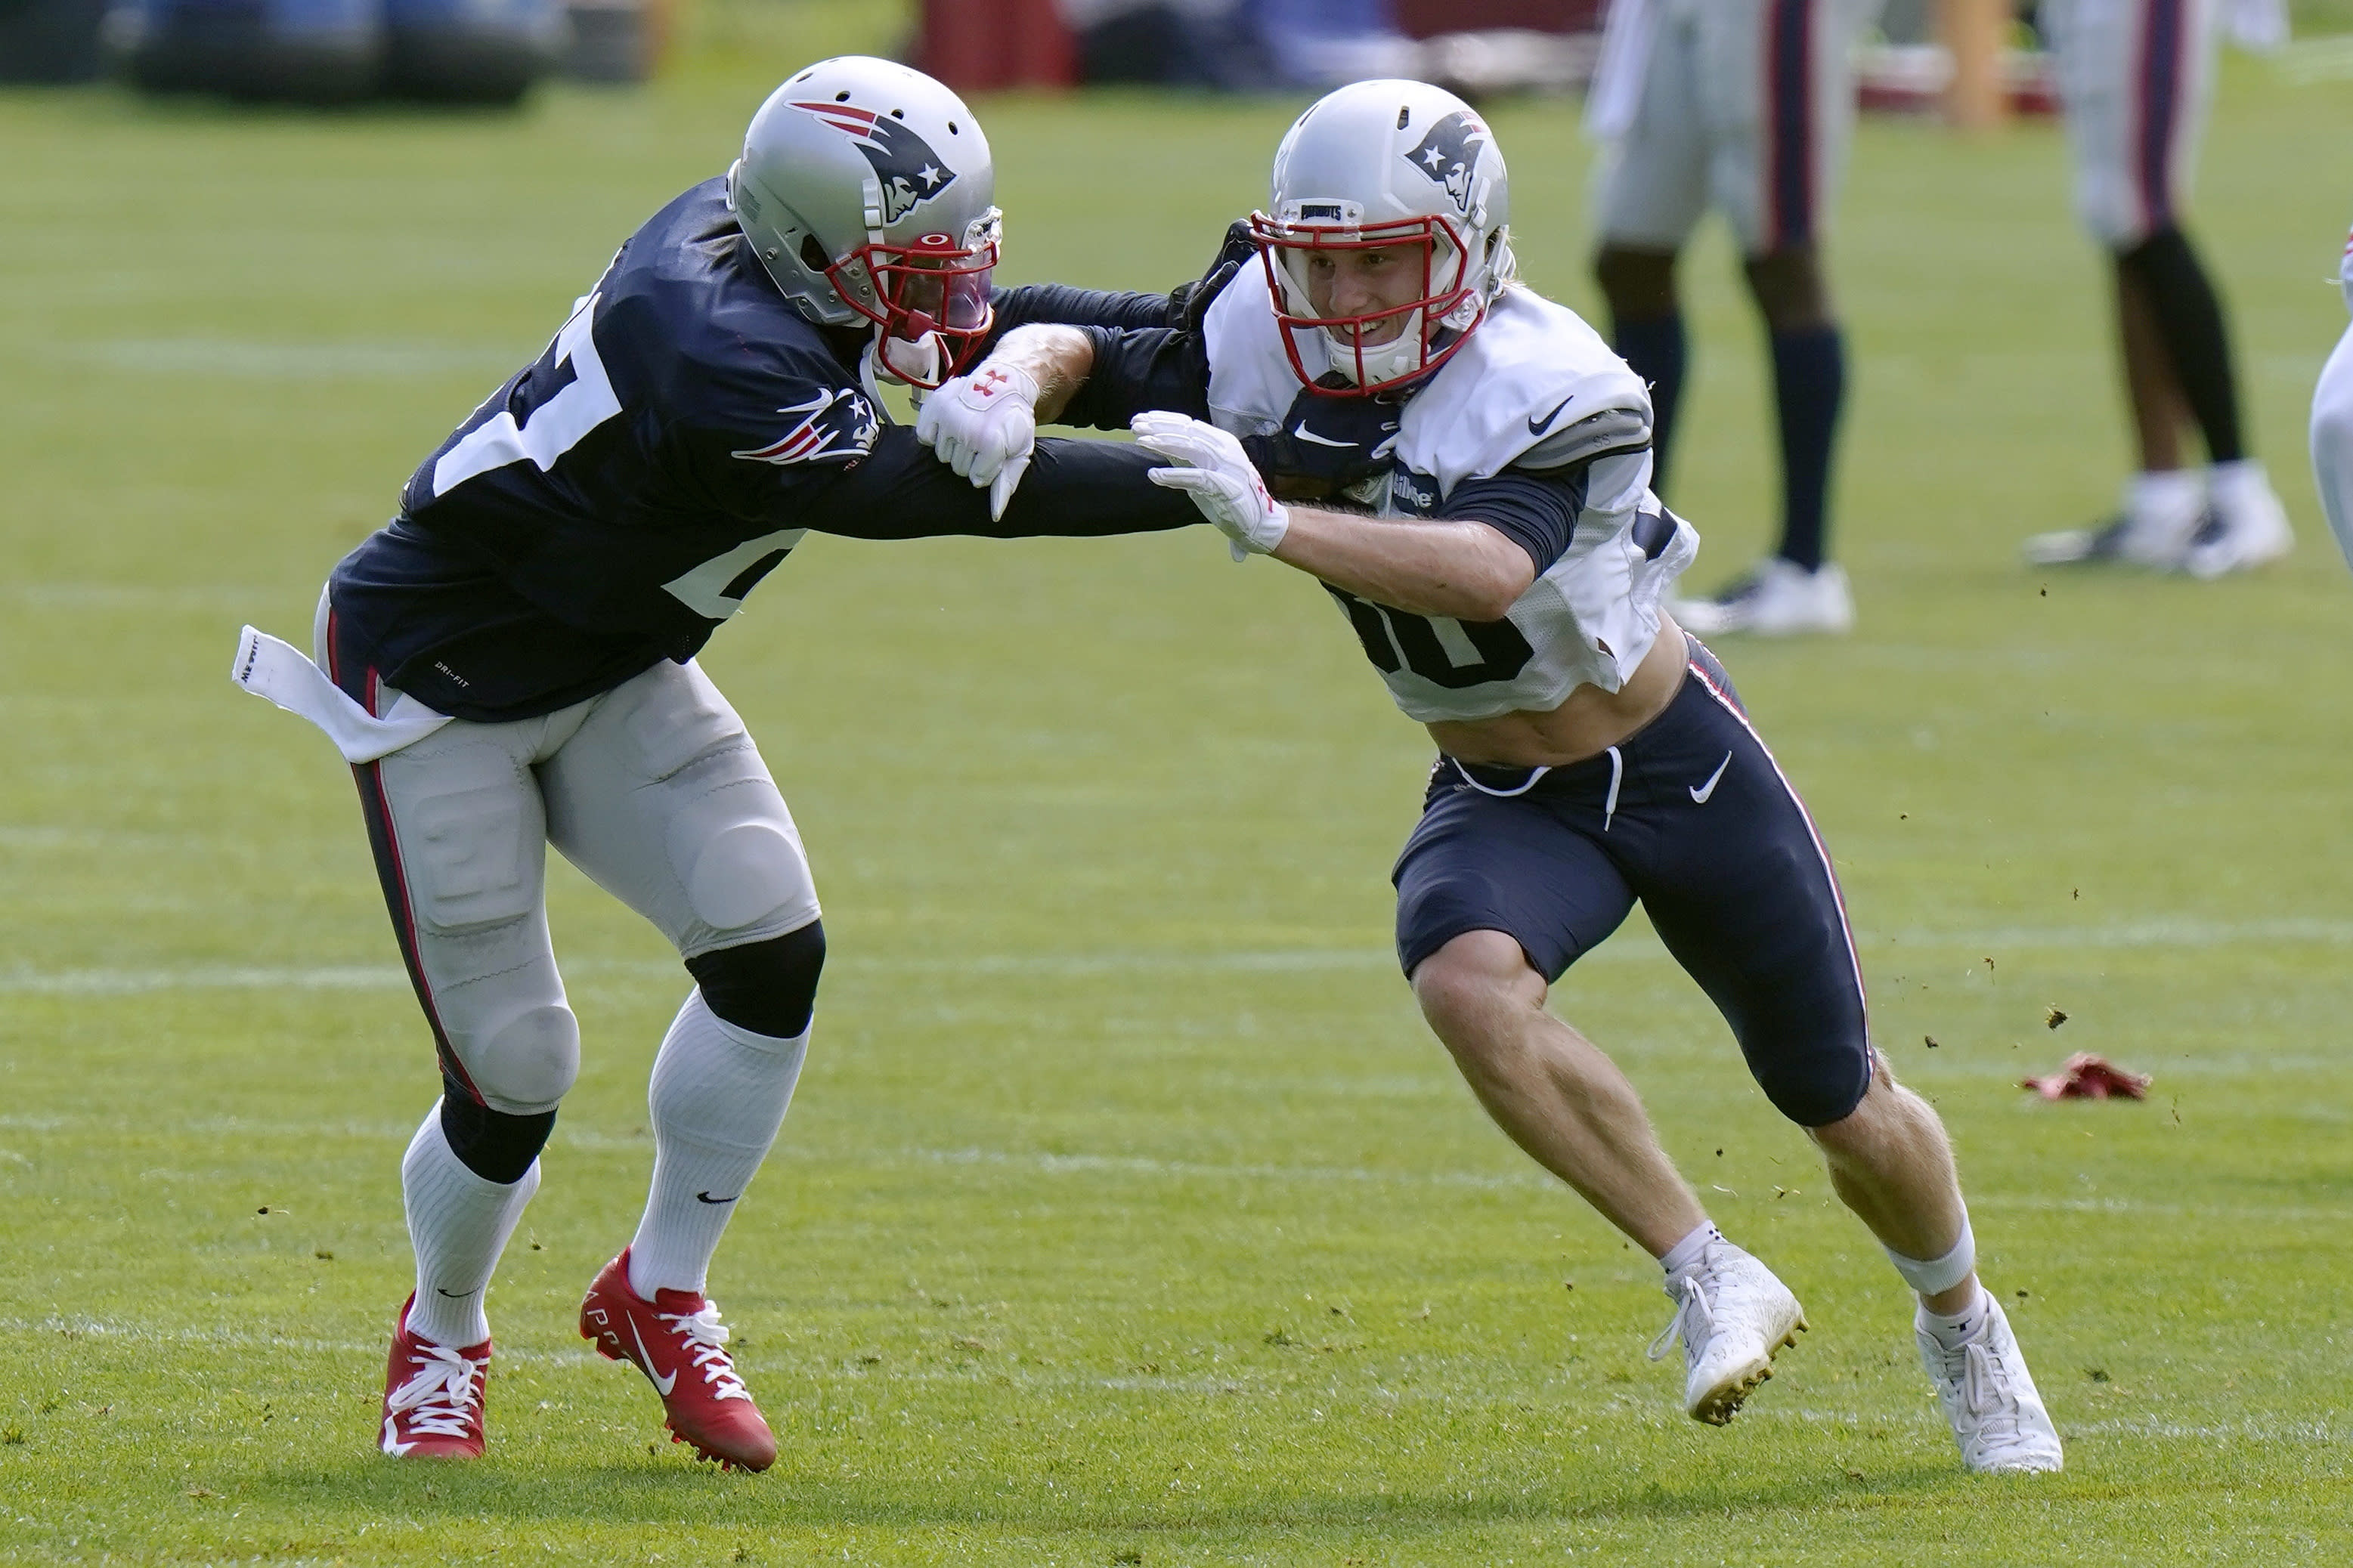 New England Patriots defensive back J.C. Jackson (27) and wide receiver Gunner Olszewski (80) run a passing drill during an NFL football training camp practice, Monday, Aug. 24, 2020, in Foxborough, Mass. (AP Photo/Steven Senne, Pool)